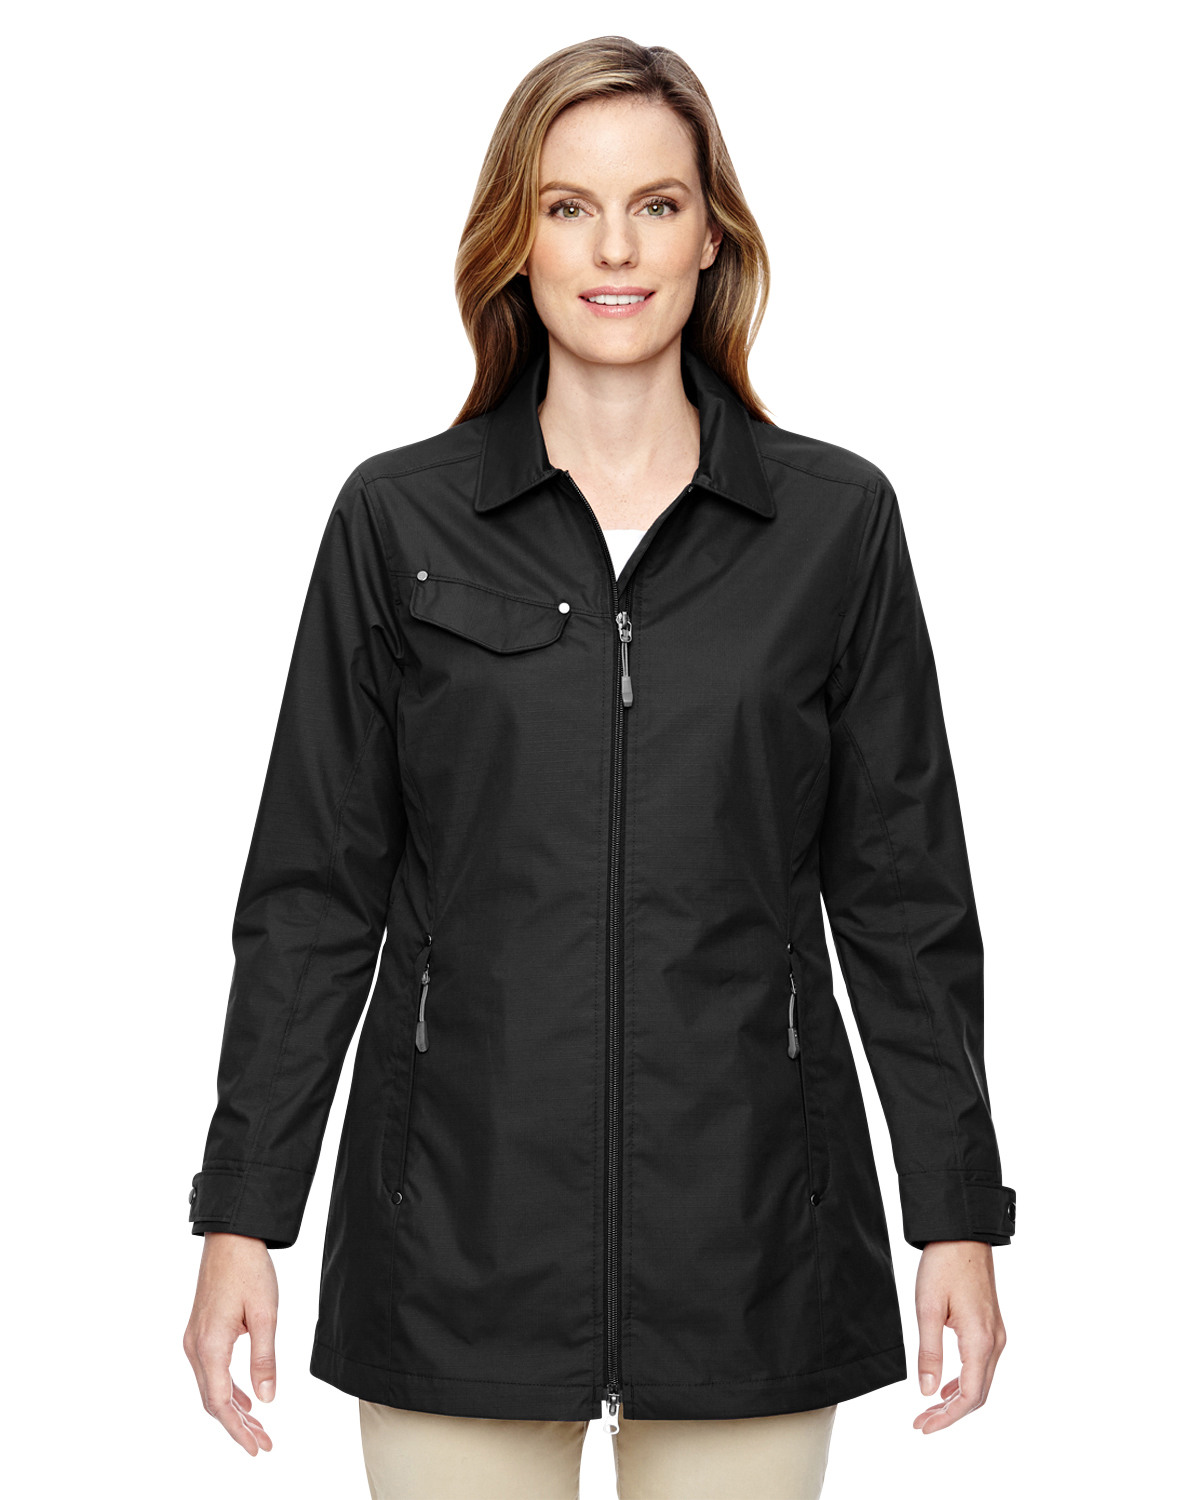 Ladies' Excursion Ambassador Lightweight Jacket with Fold Down Collar